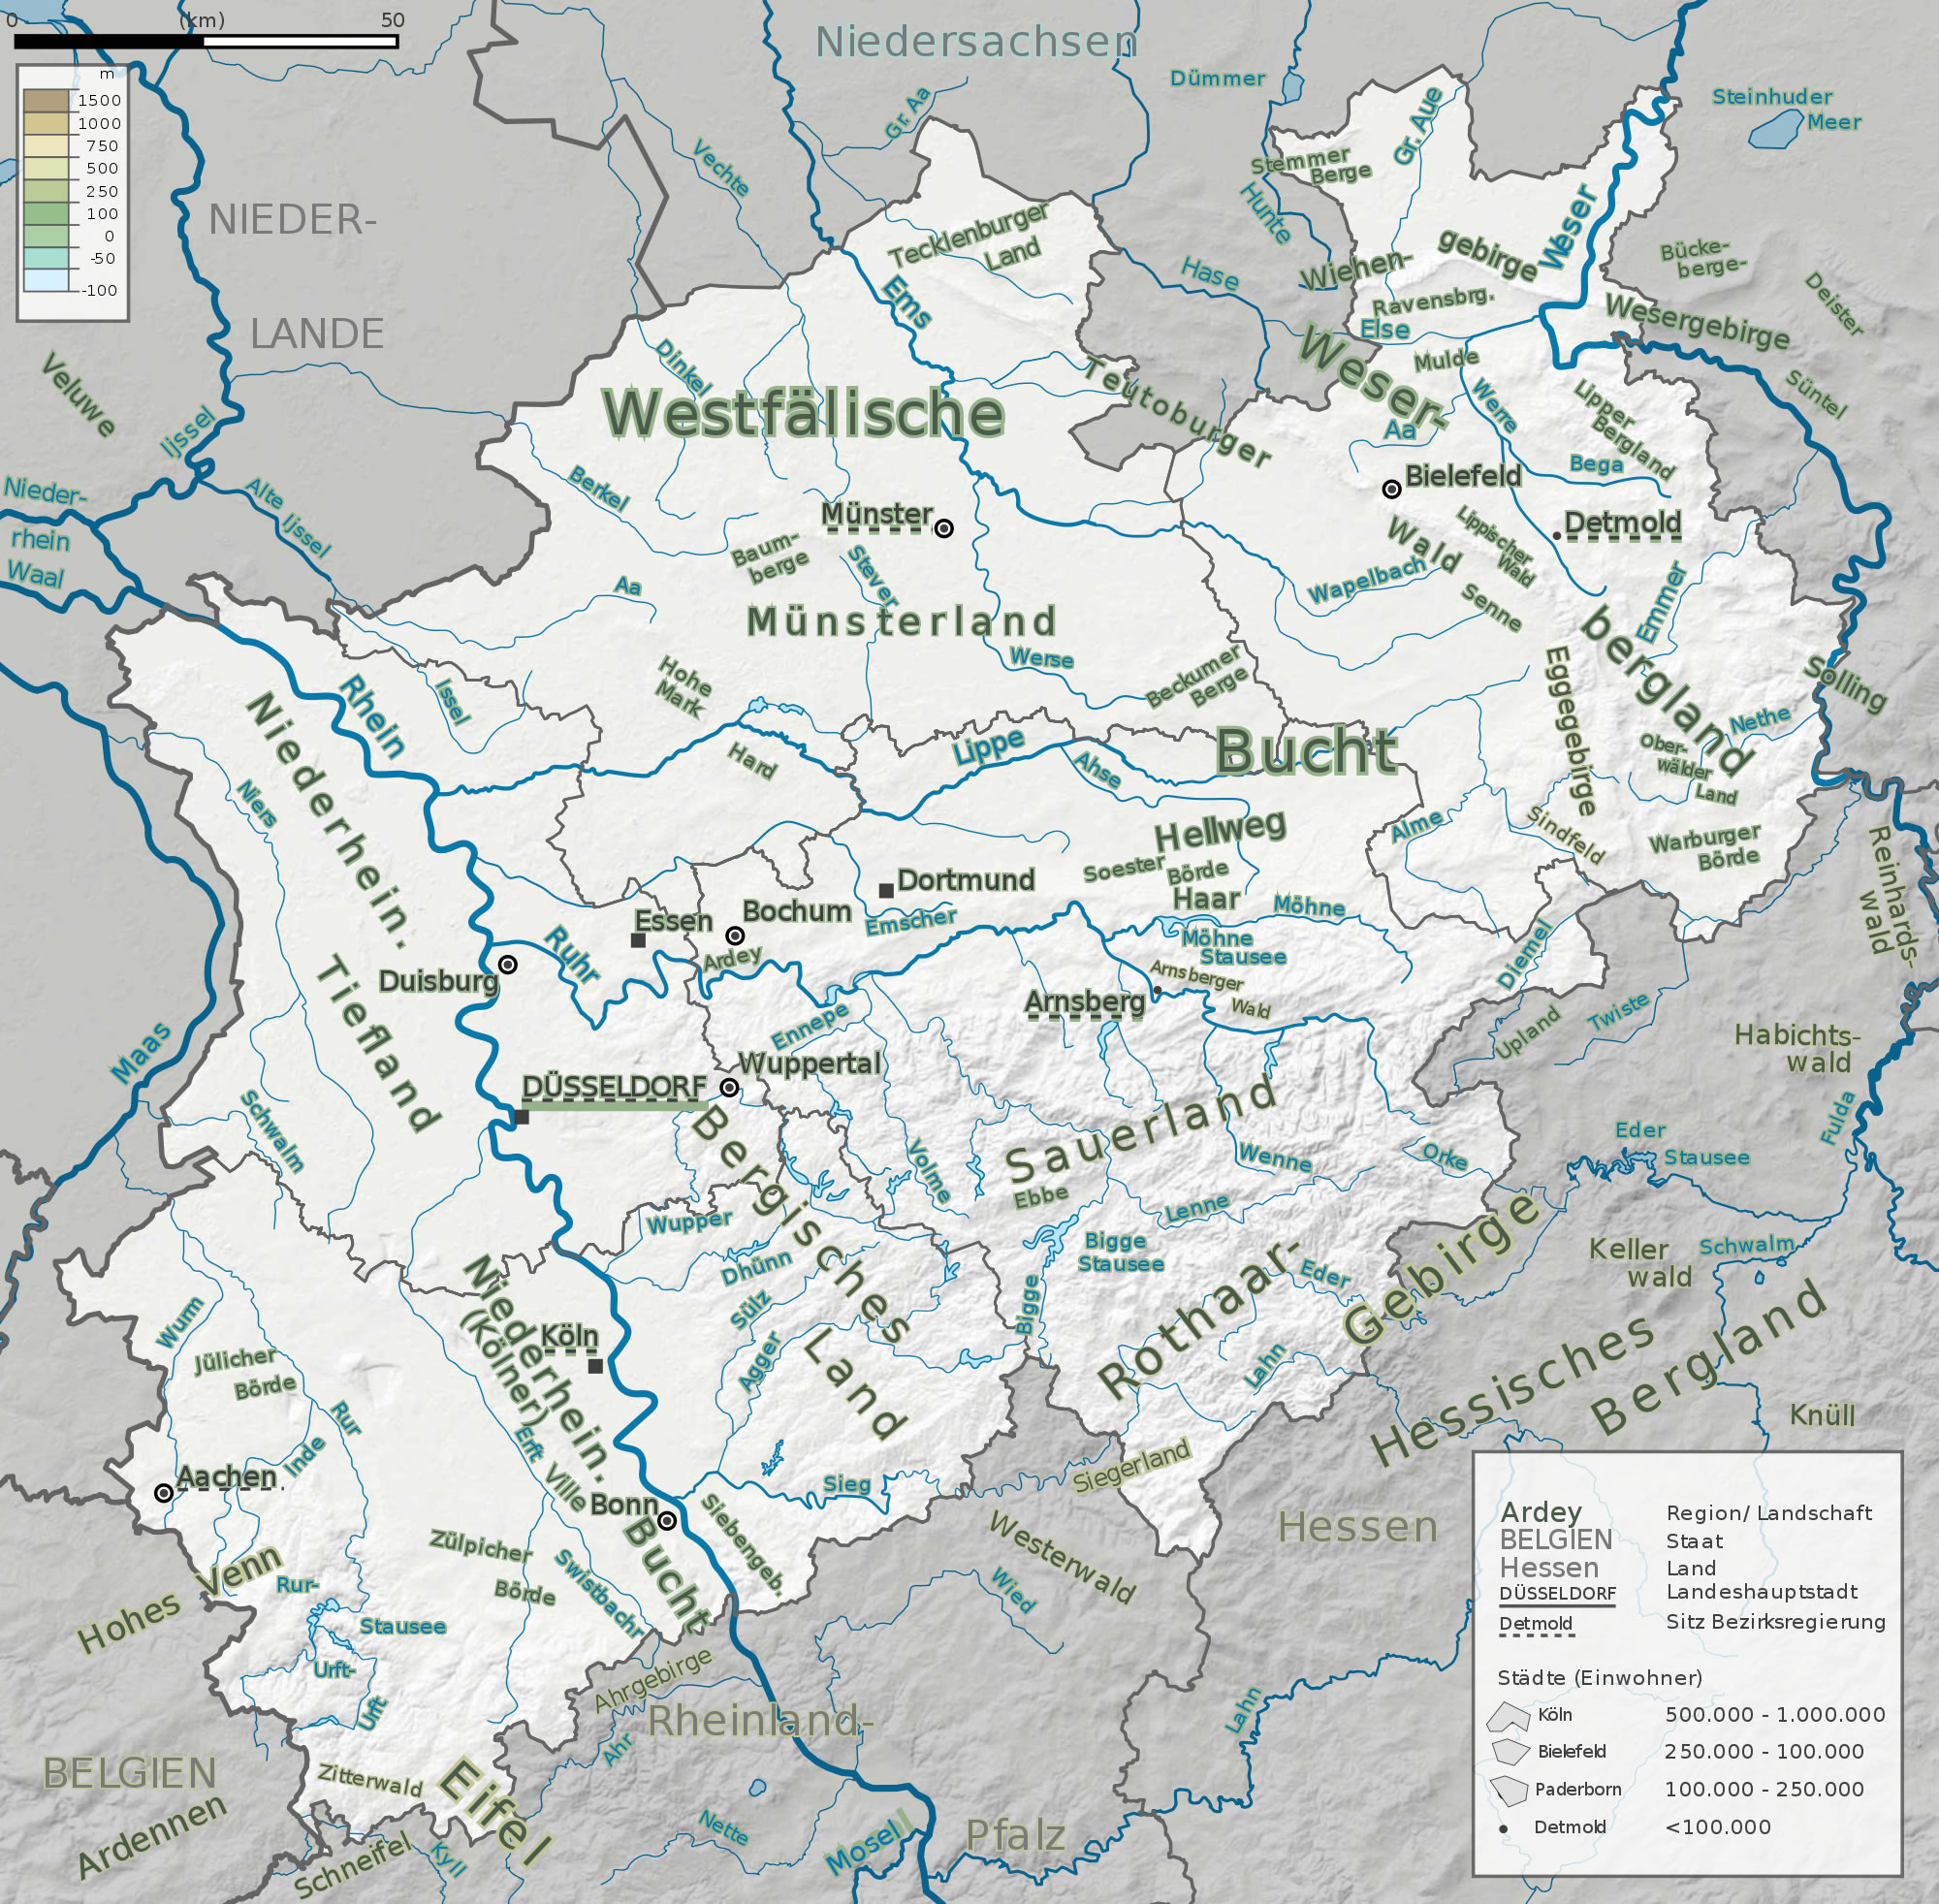 Main mountain ranges, rivers and landscapes of North Rhine-Westphalia 2009